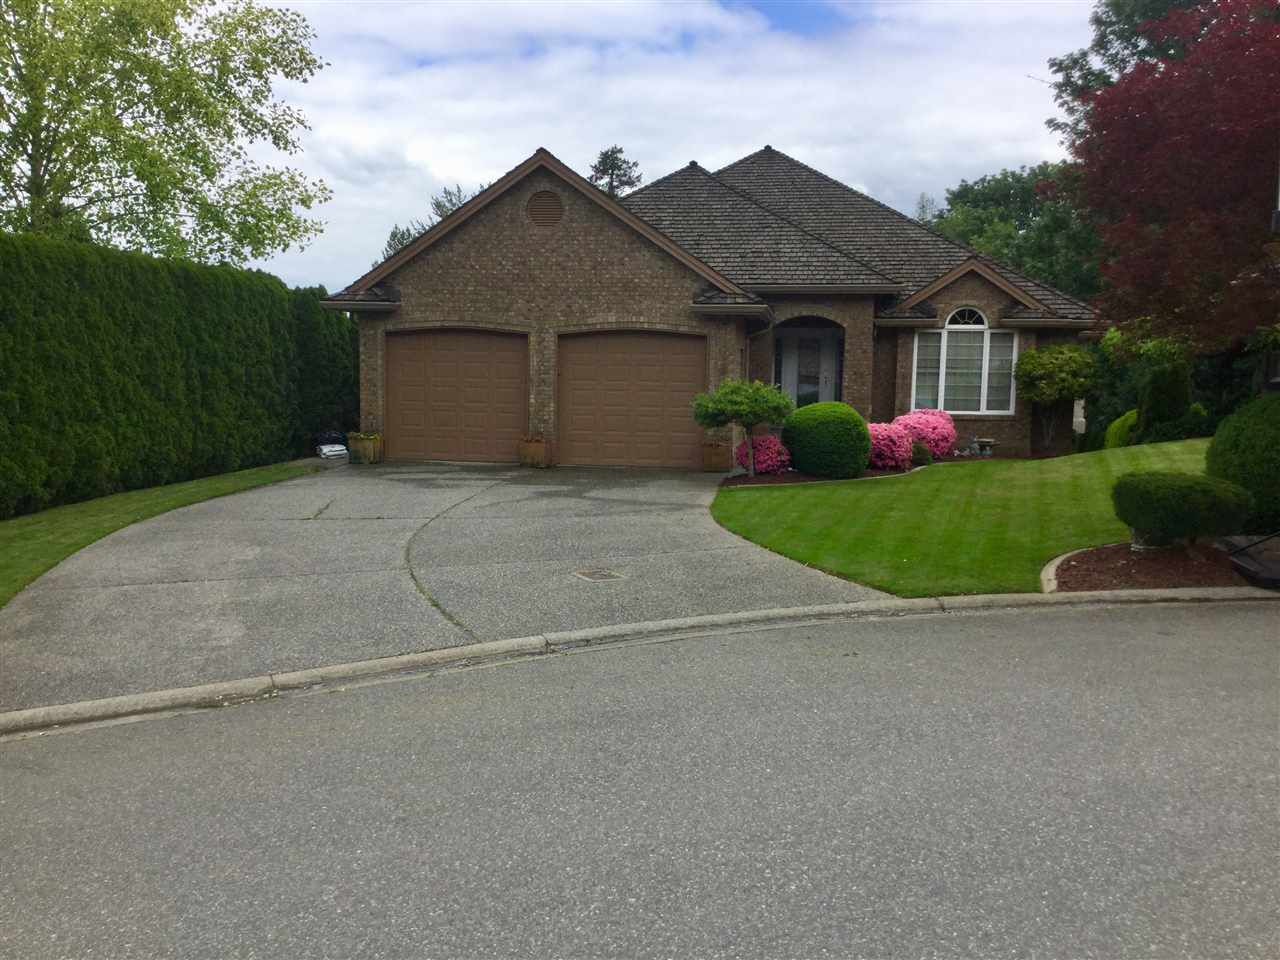 """Main Photo: 34825 MILLSTONE Court in Abbotsford: Abbotsford East House for sale in """"Creekstone On The Park"""" : MLS®# R2344127"""